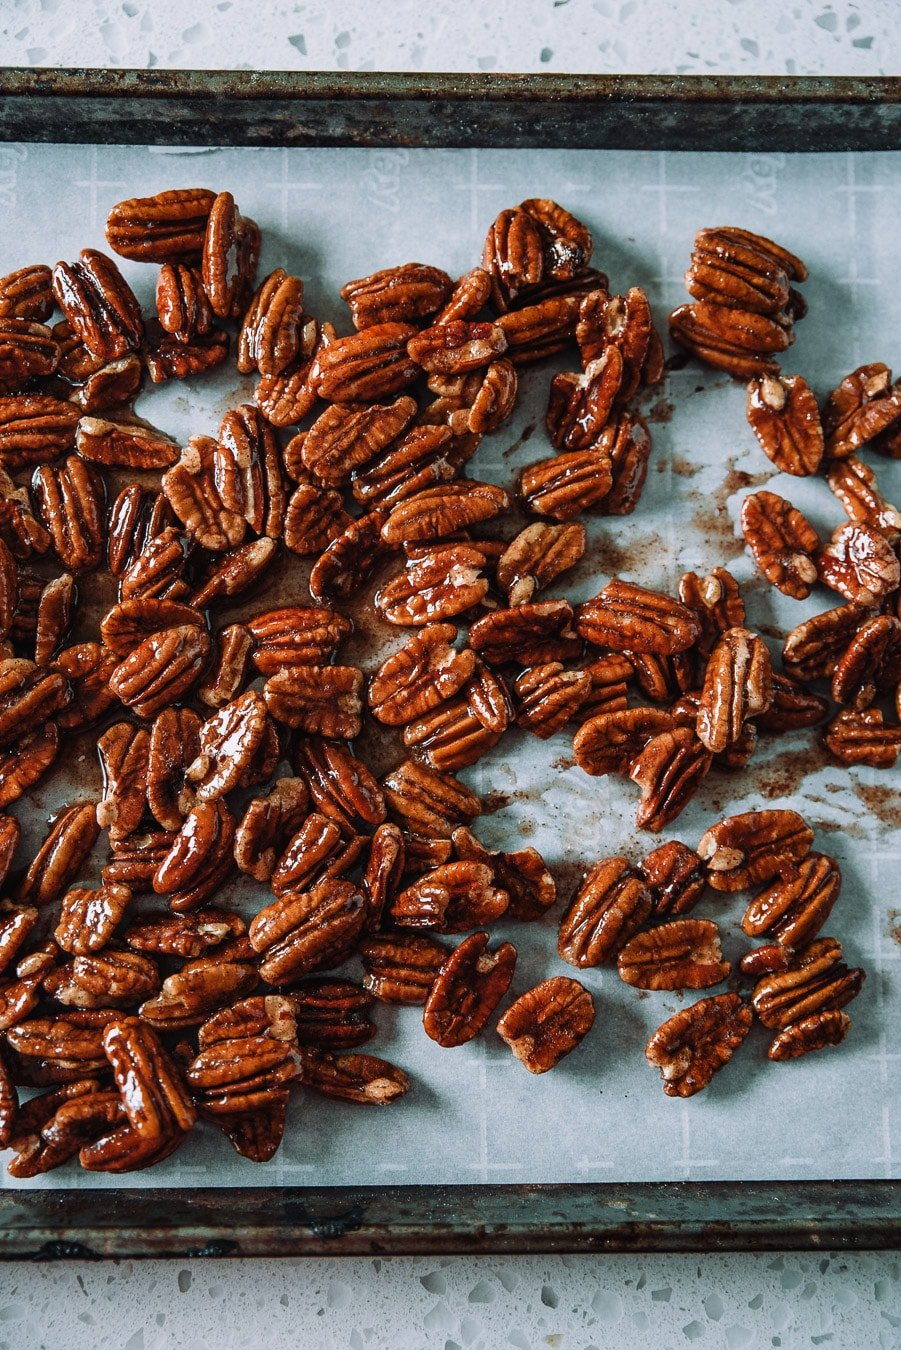 Candied pecans on a parchment lined baking sheet.